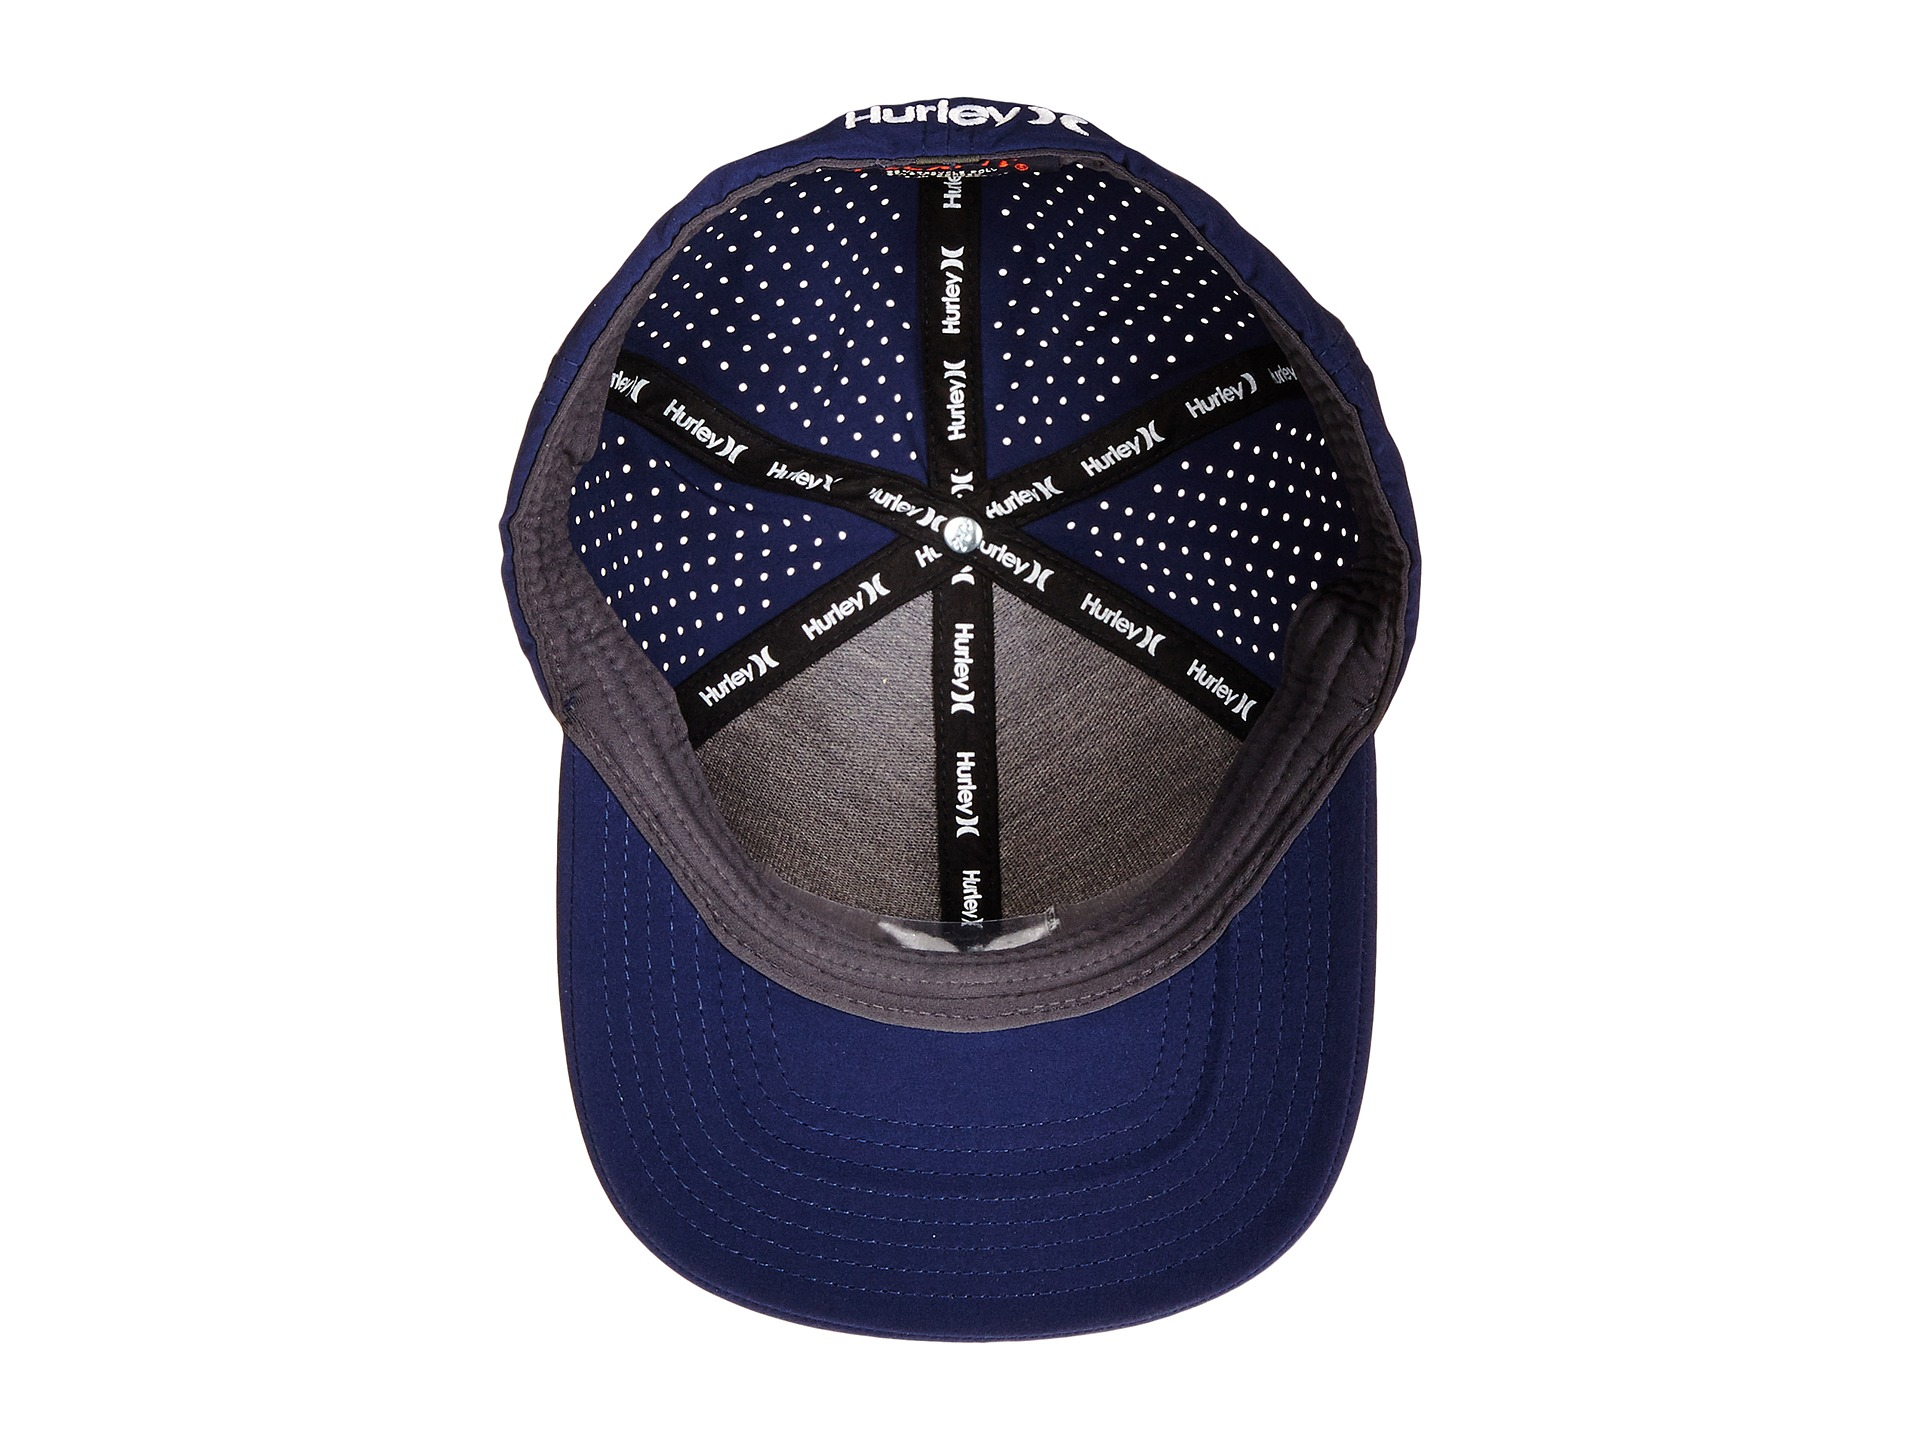 946ac3413ee ... cheapest lyst hurley phantom vapor 2.0 fitted hat in blue for men 145f3  358aa ...